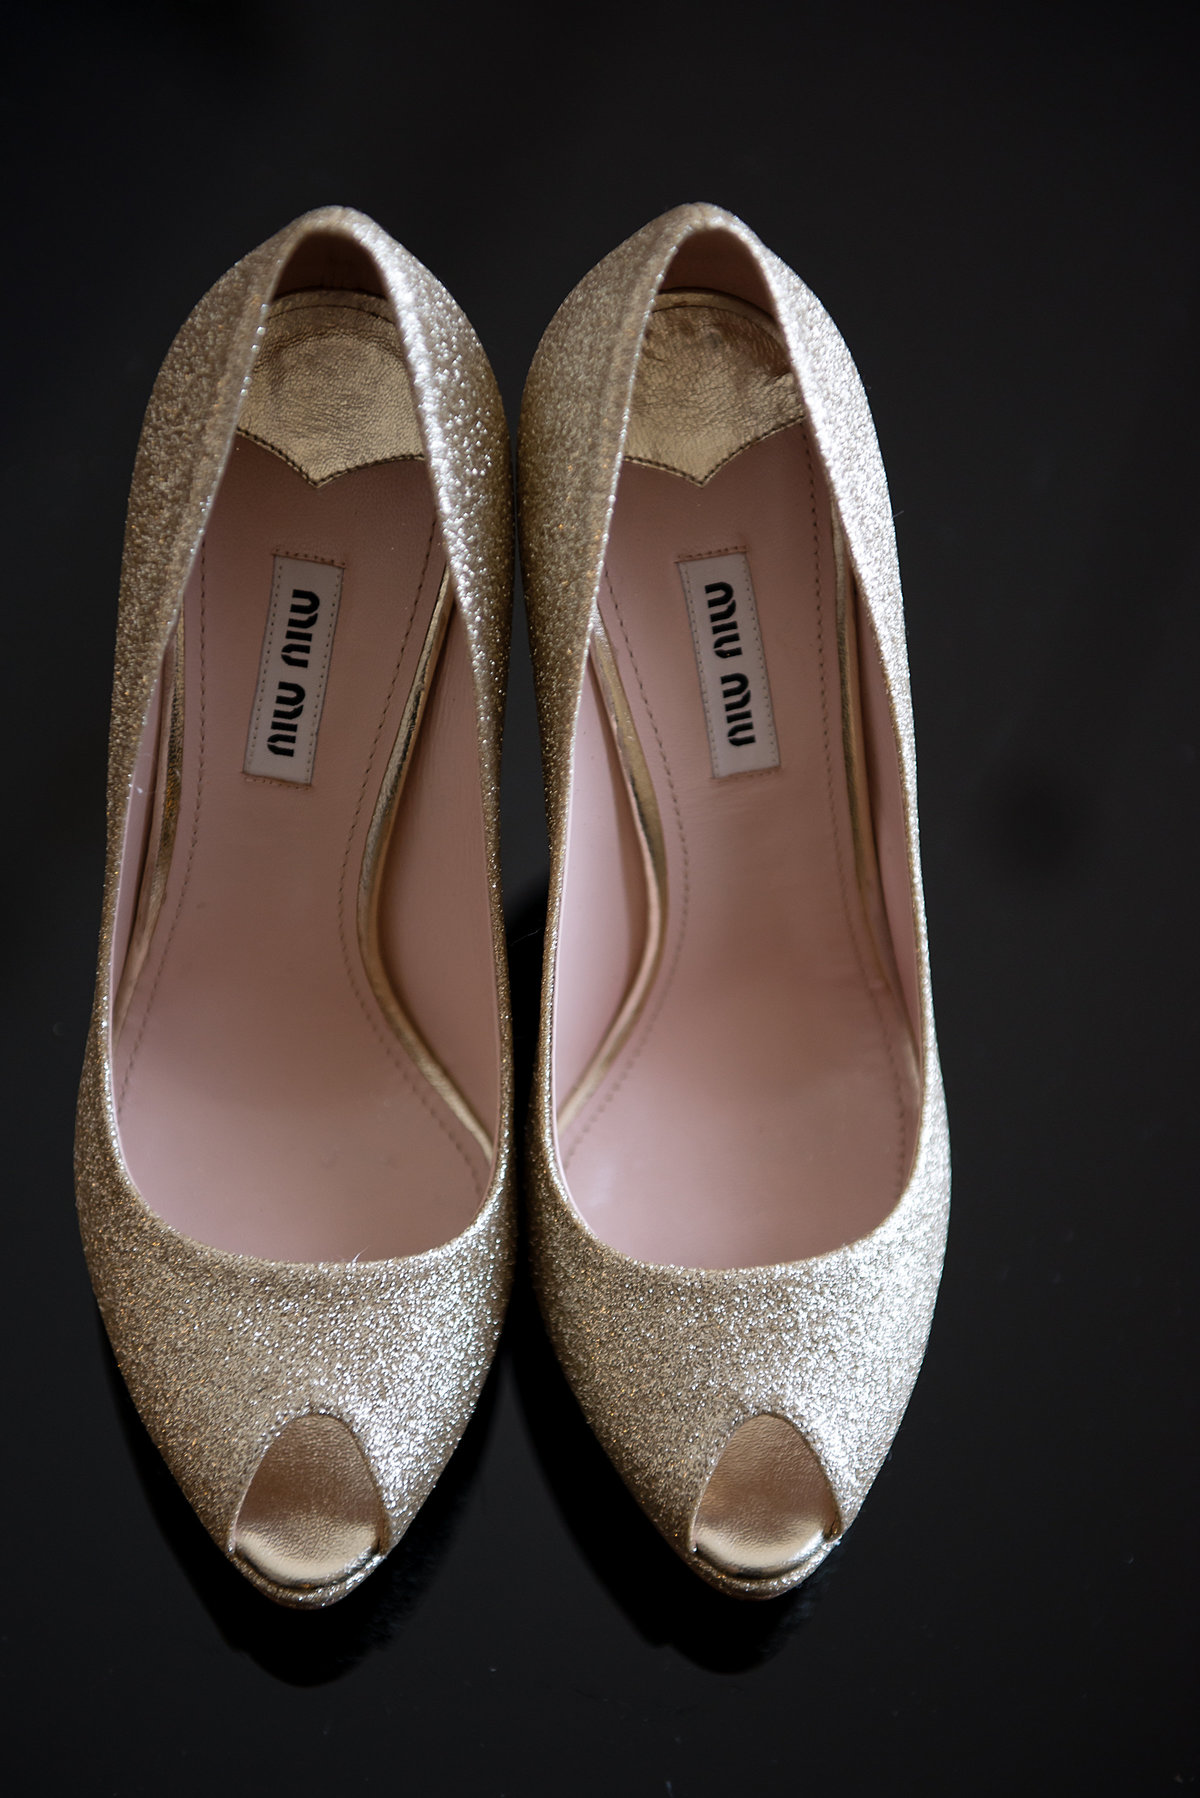 Miu Miu Bridal Shoes